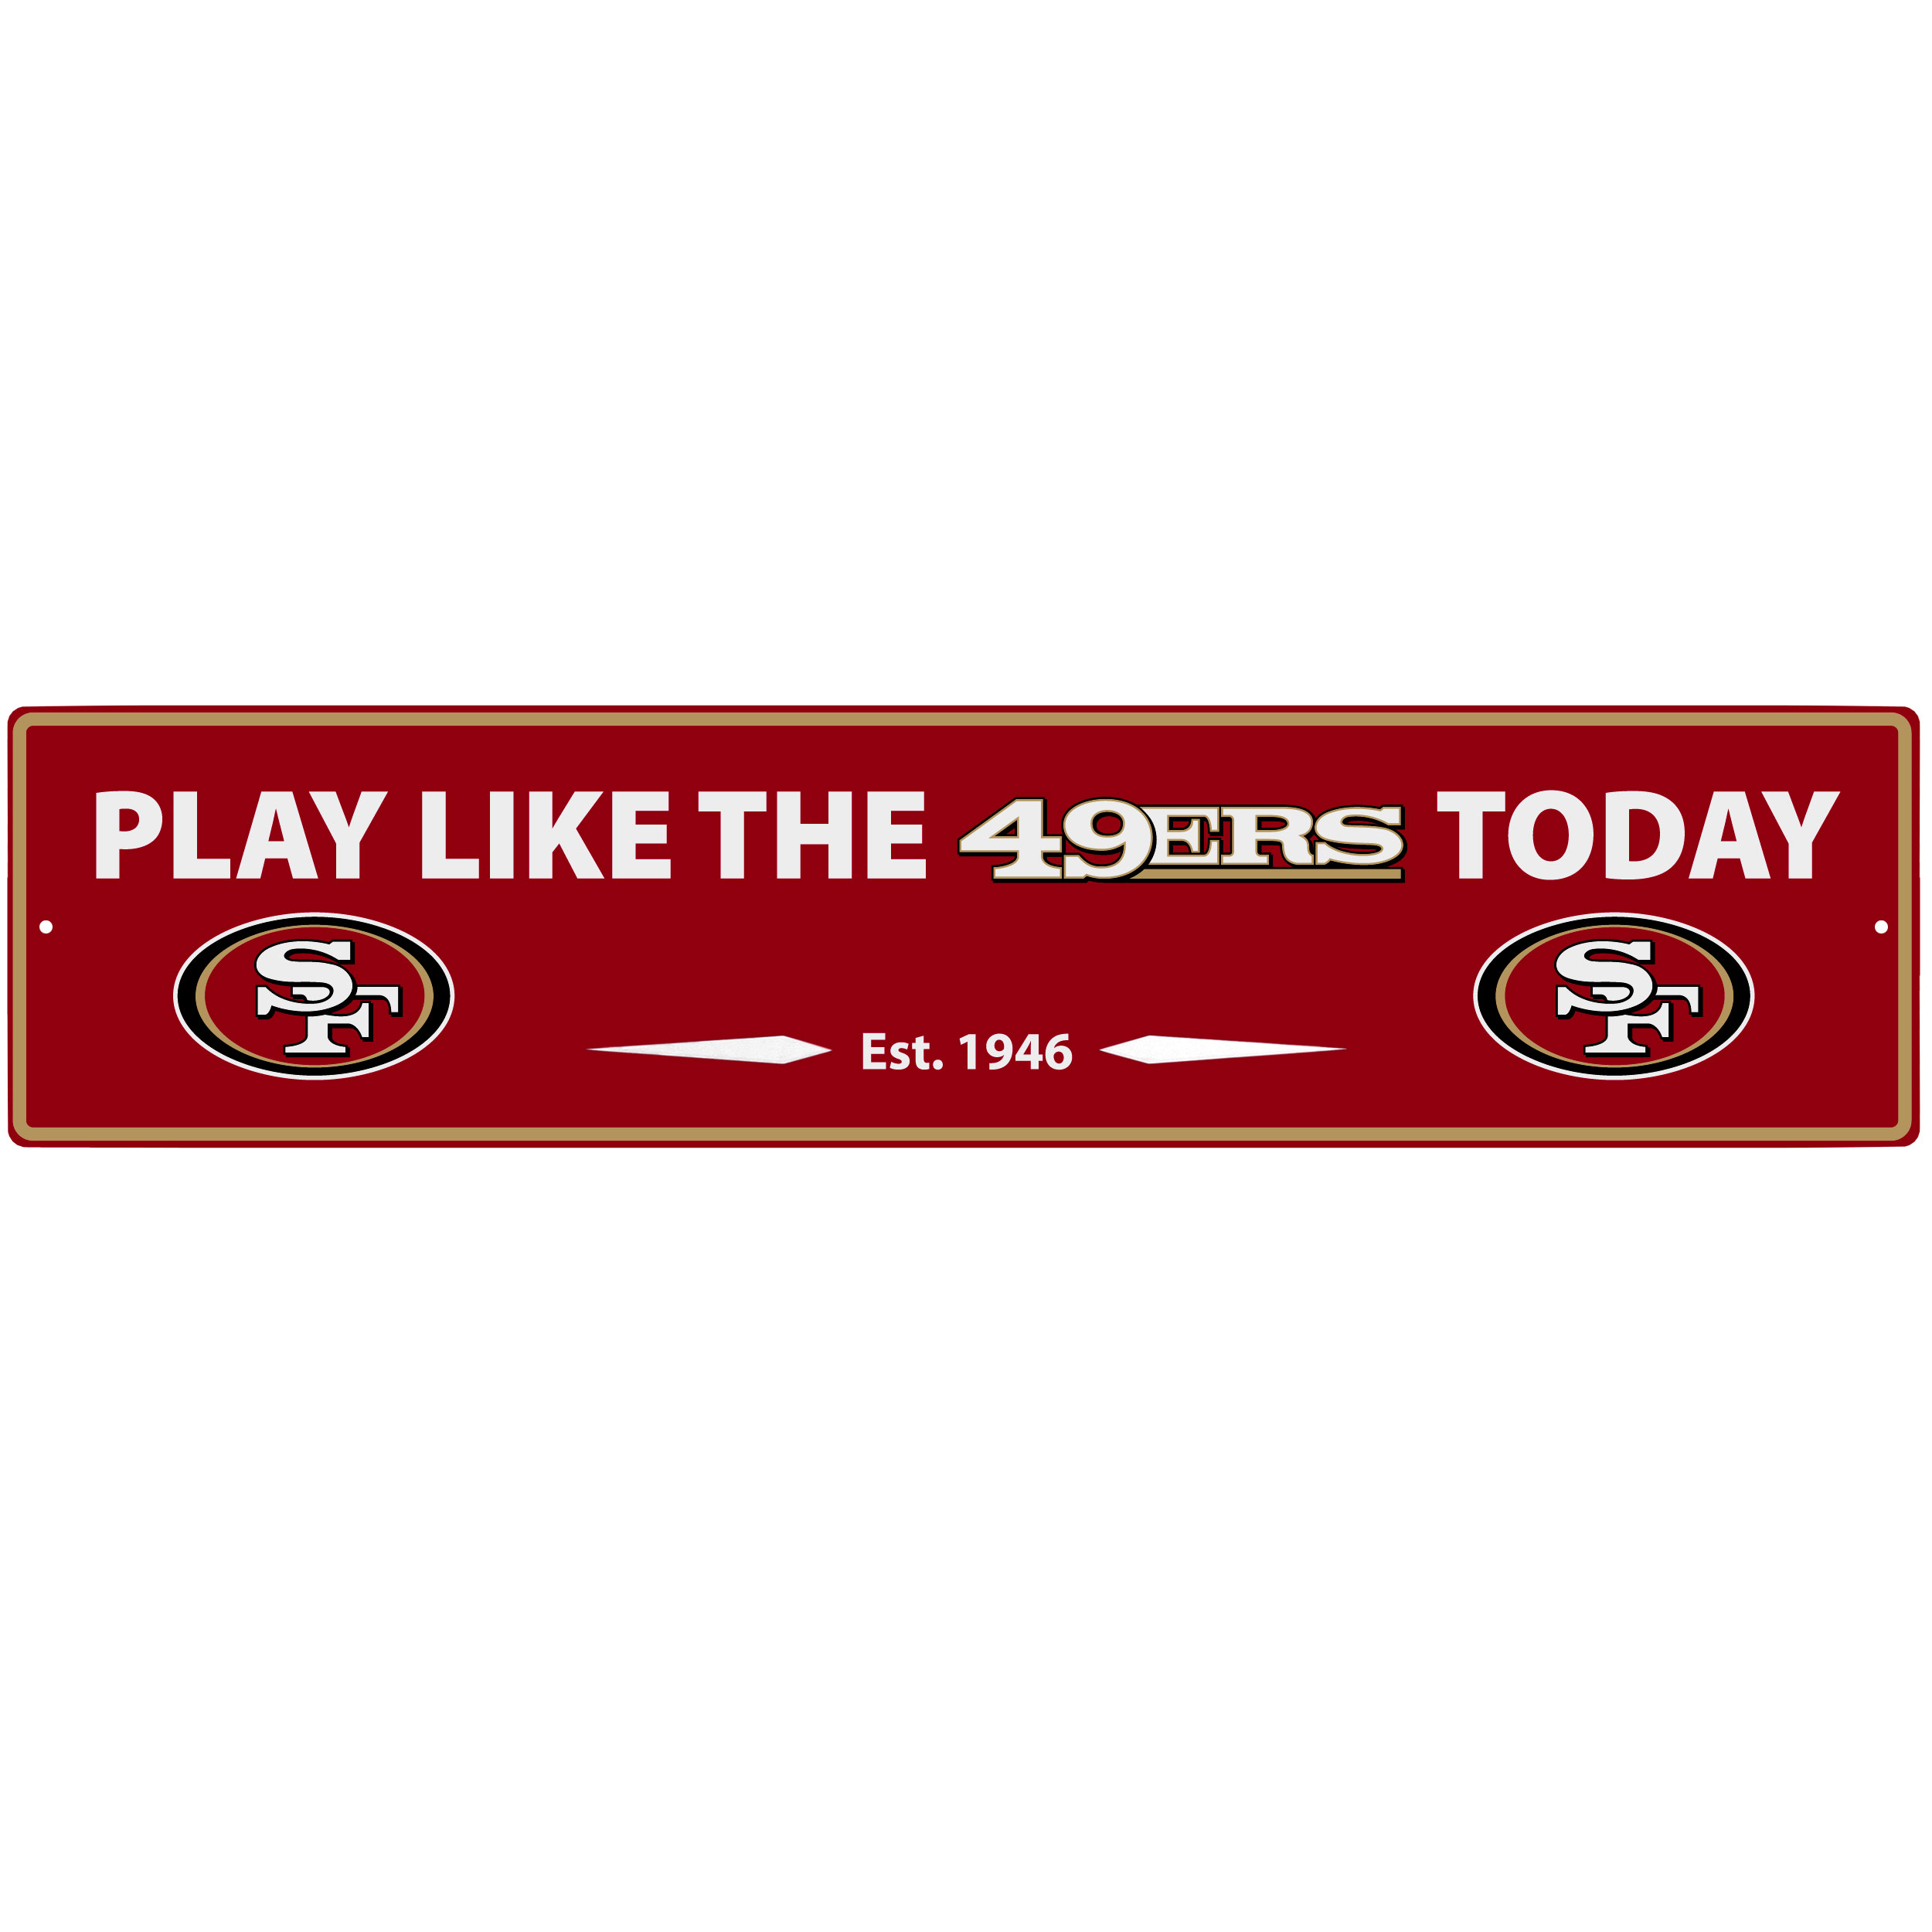 San Francisco 49ers Street Sign Wall Plaque - This motivational plaque is perfect for hanging over the doorway of your fan cave reminding you to play like your champion San Francisco 49ers! The sign is 20 inches wide and made of light-weight stamped aluminum. The bright team colors and classic design make this a must-have home décor accessory that would look great in any game room, living room or office!